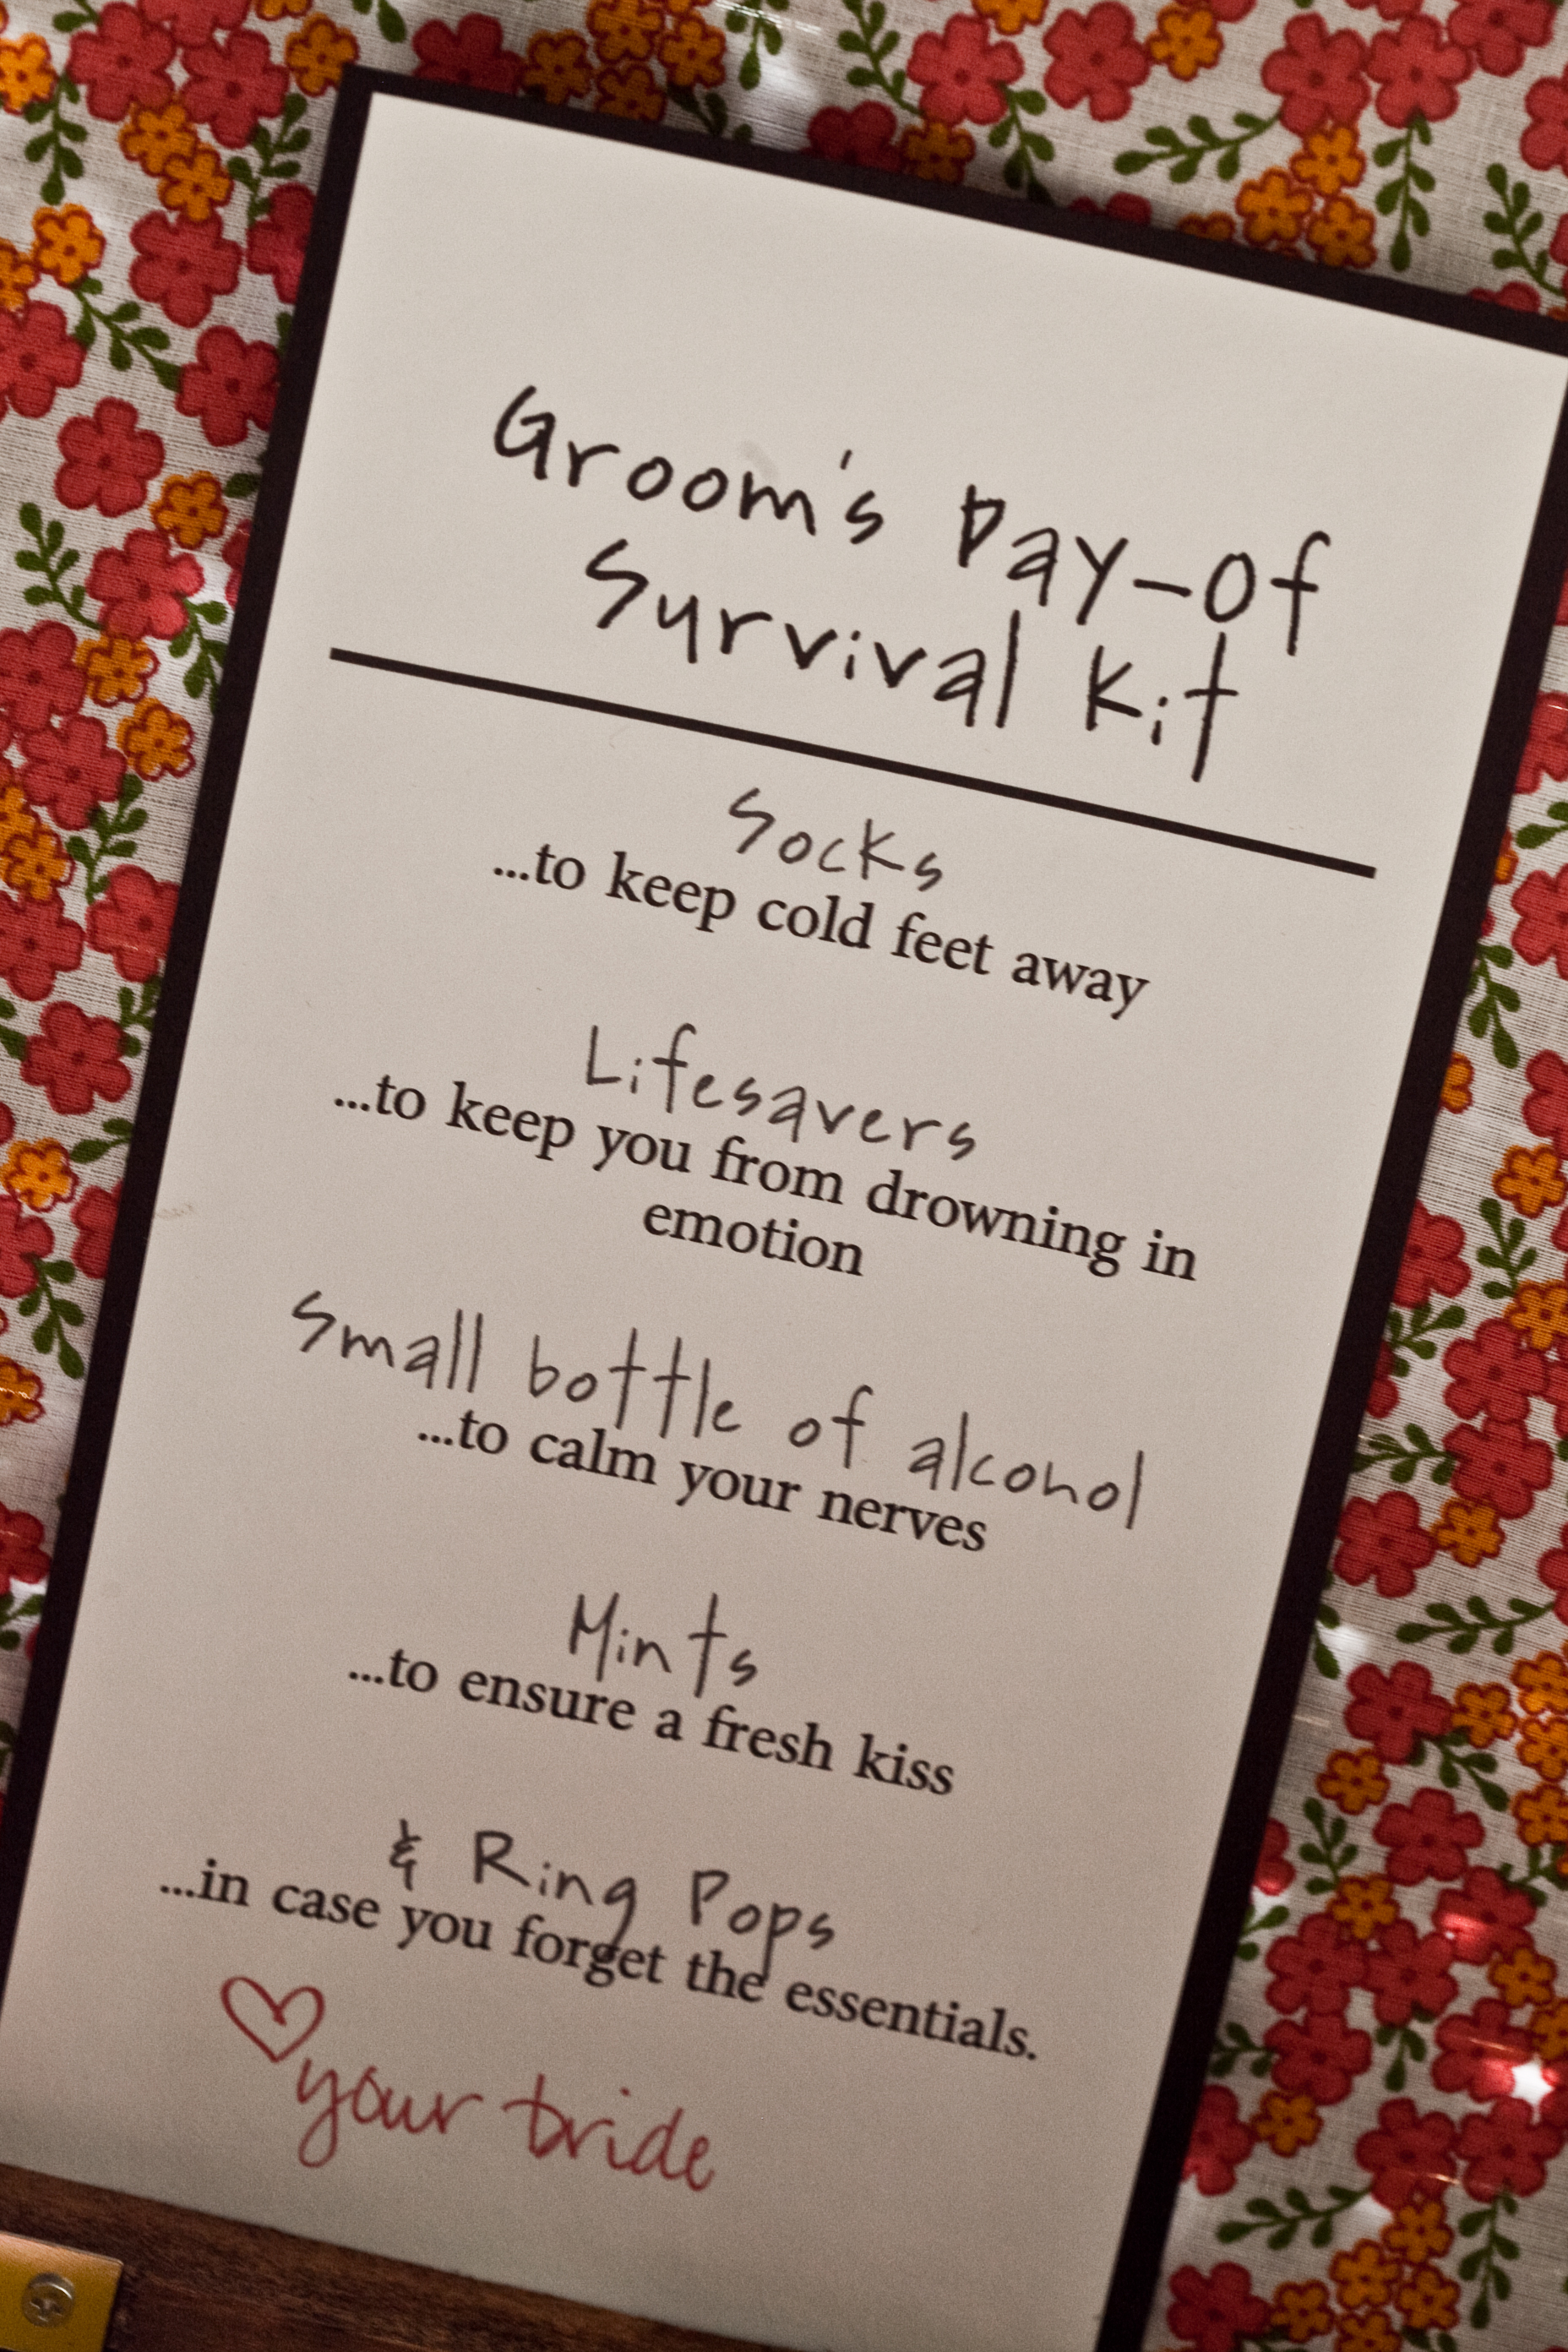 grooms survival kit! PinPoint